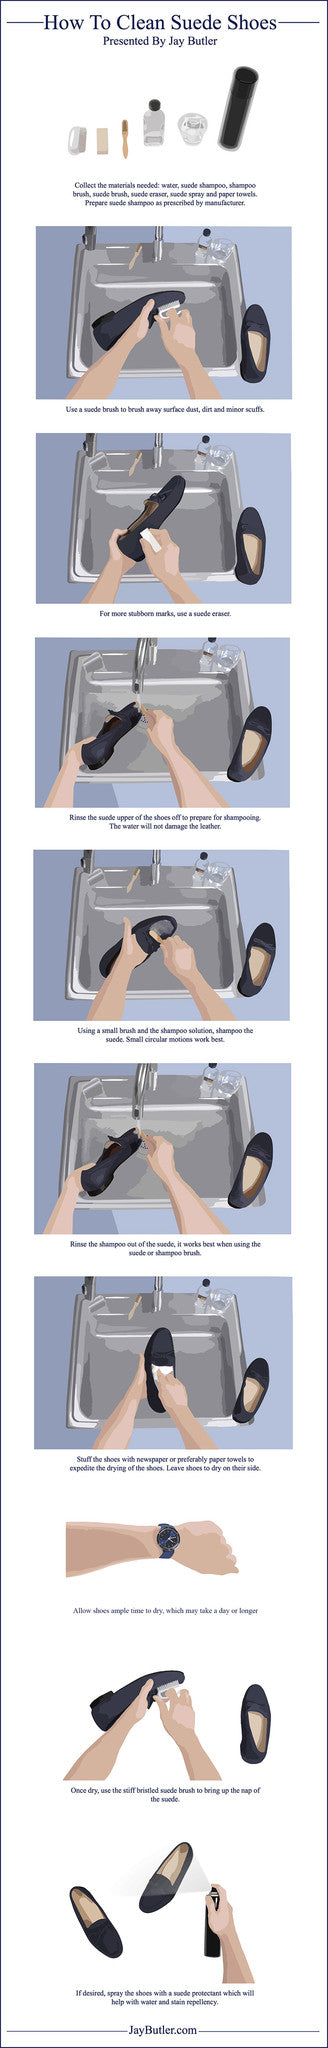 how to clean suede shoes infographic